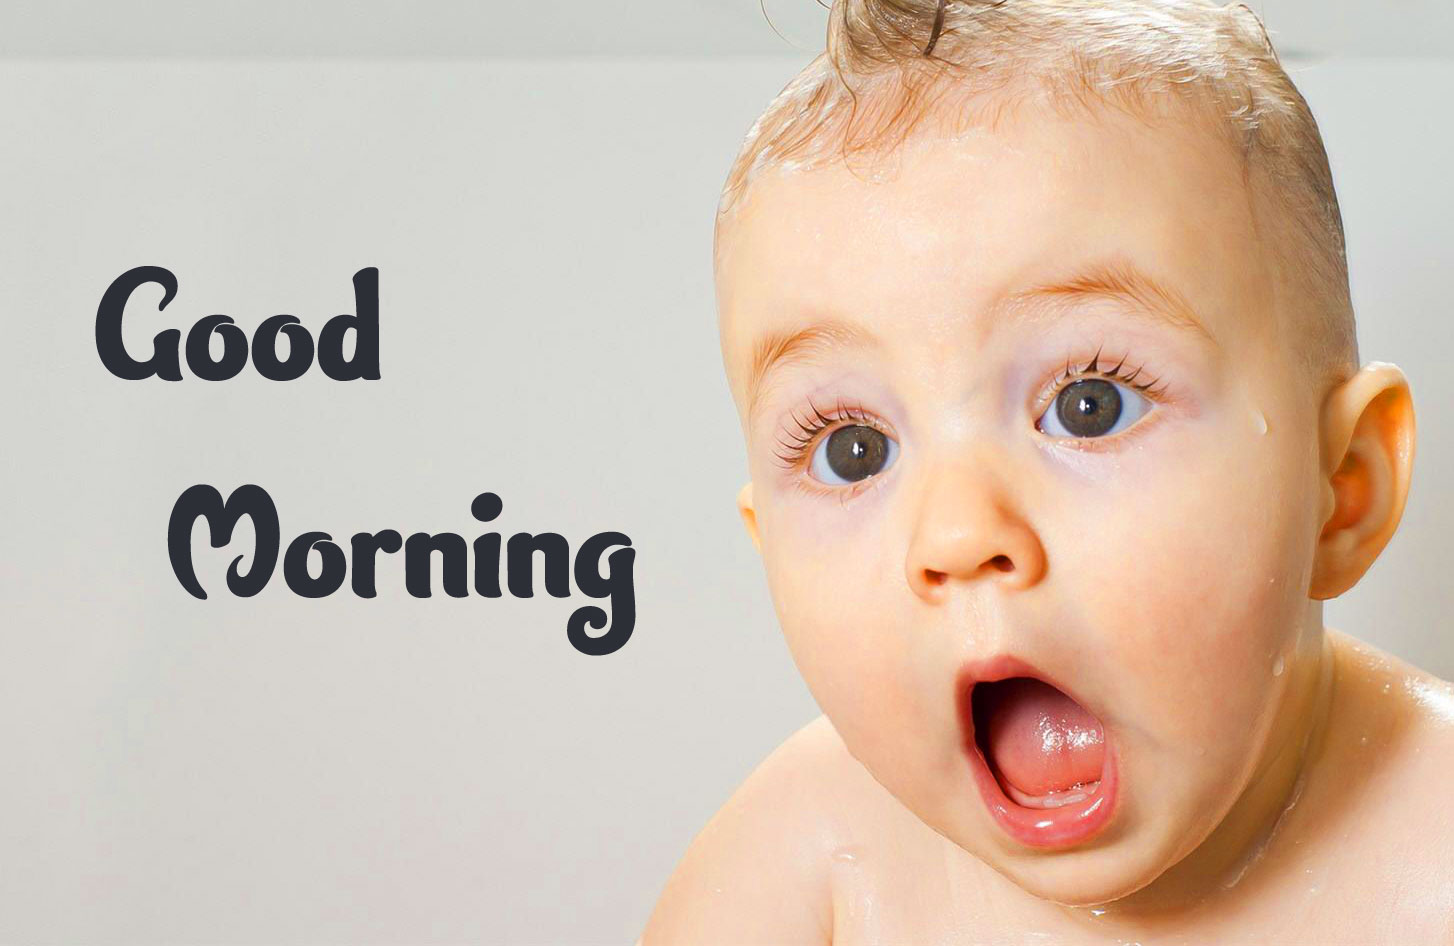 Funny Good Morning Wishes Pics photo Download